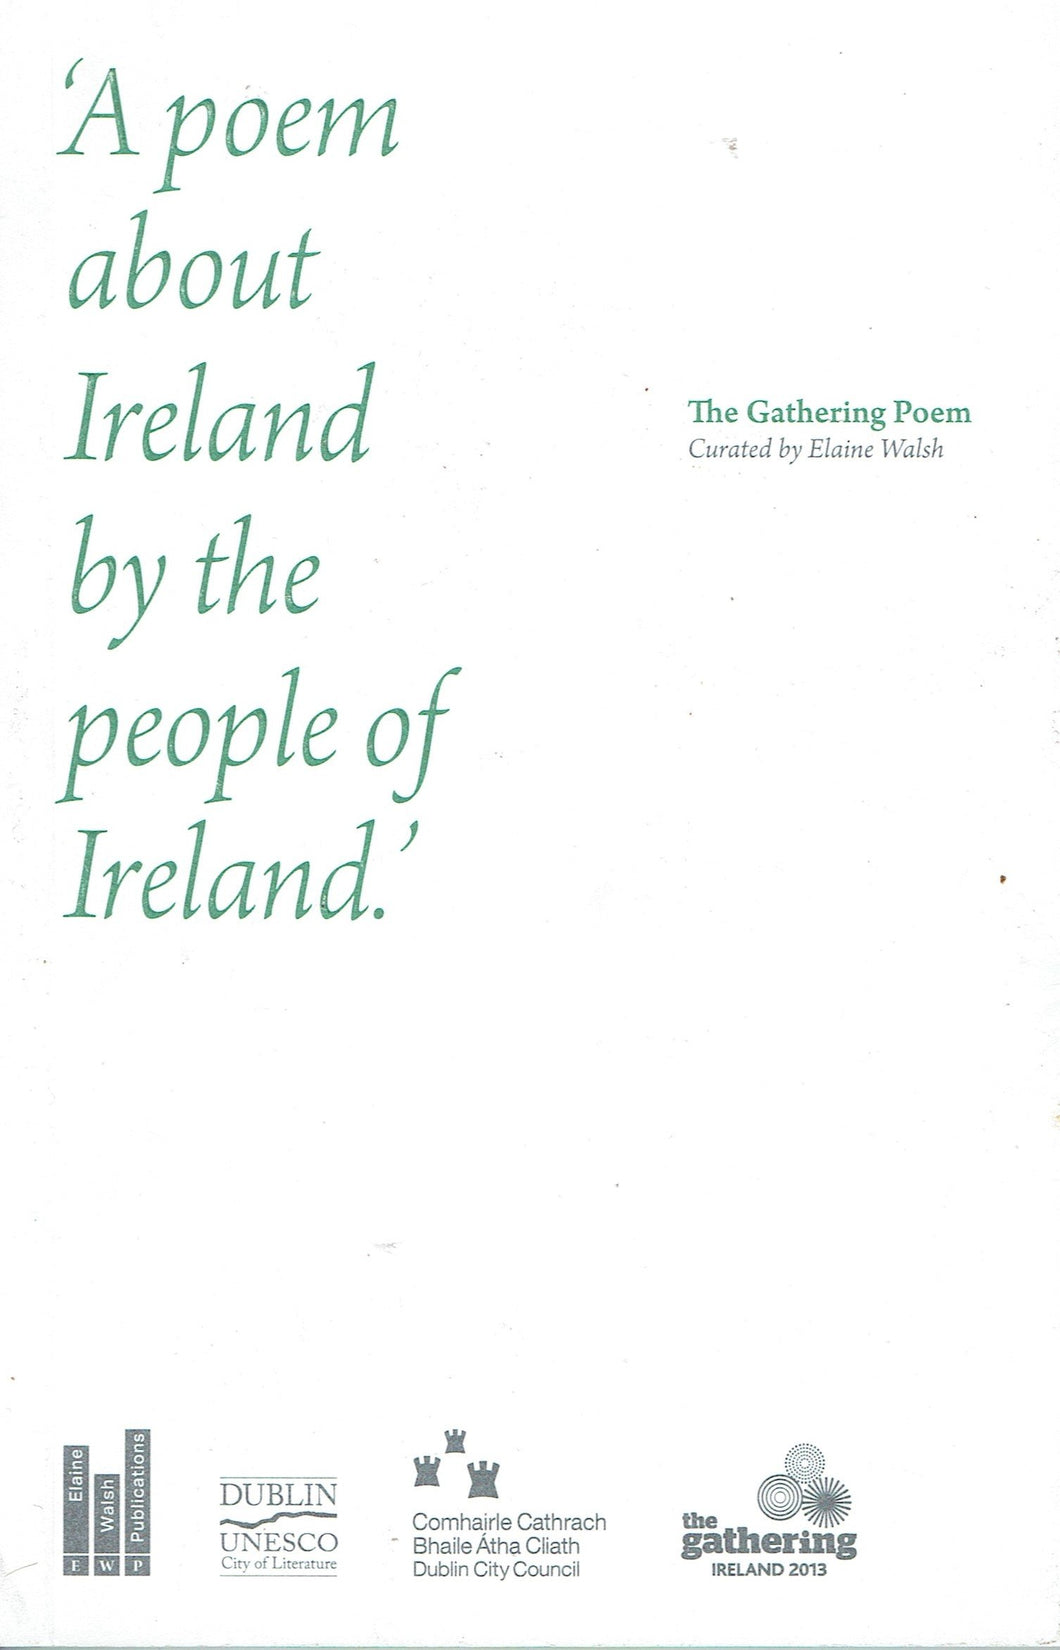 The Gathering Poem: A Poem About Ireland, by the People of Ireland